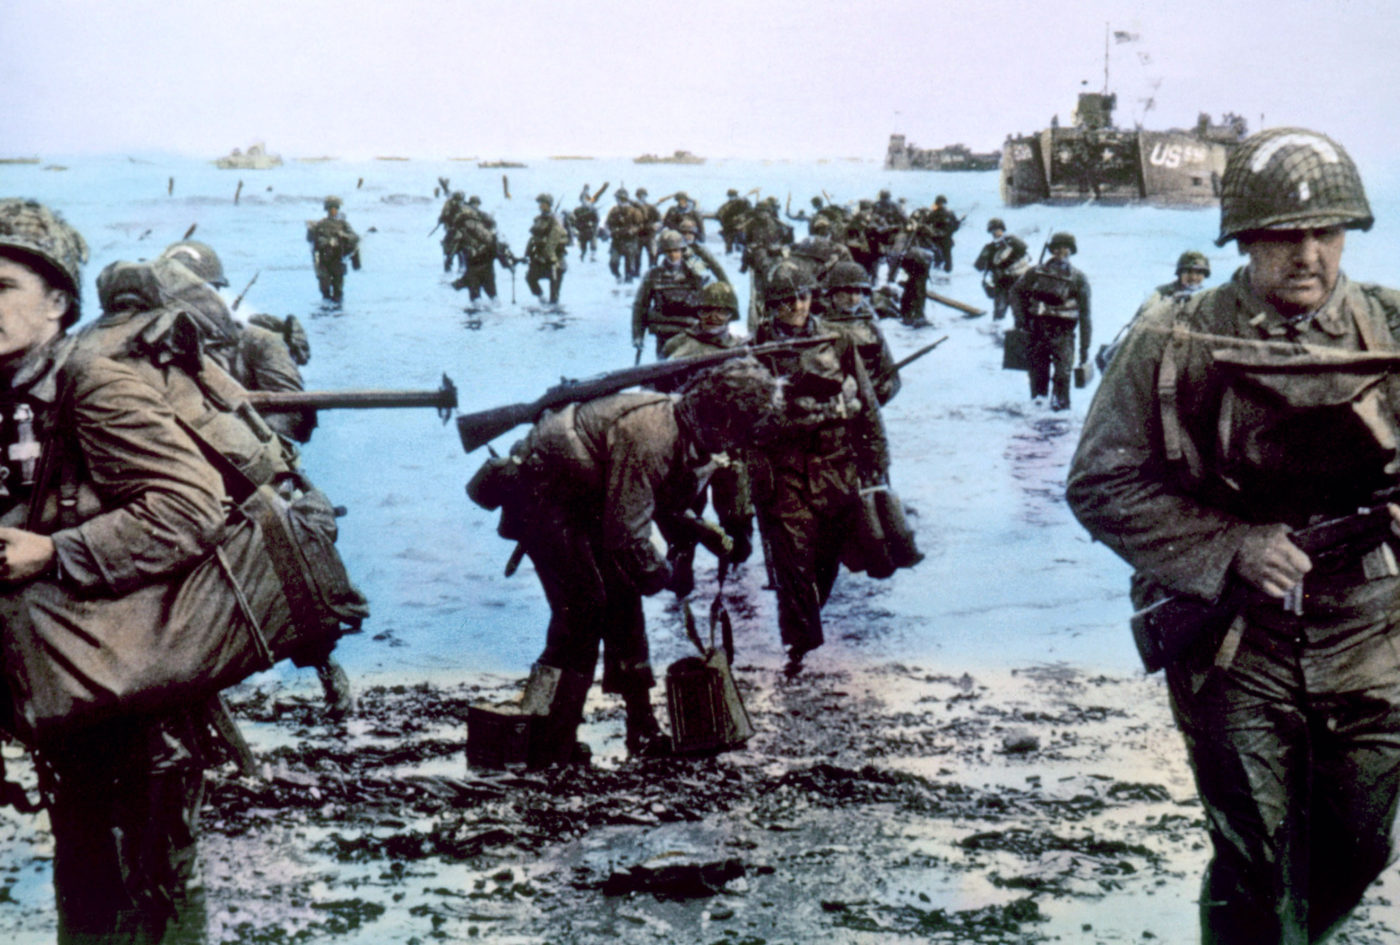 D-Day Anniversary LightWorkers